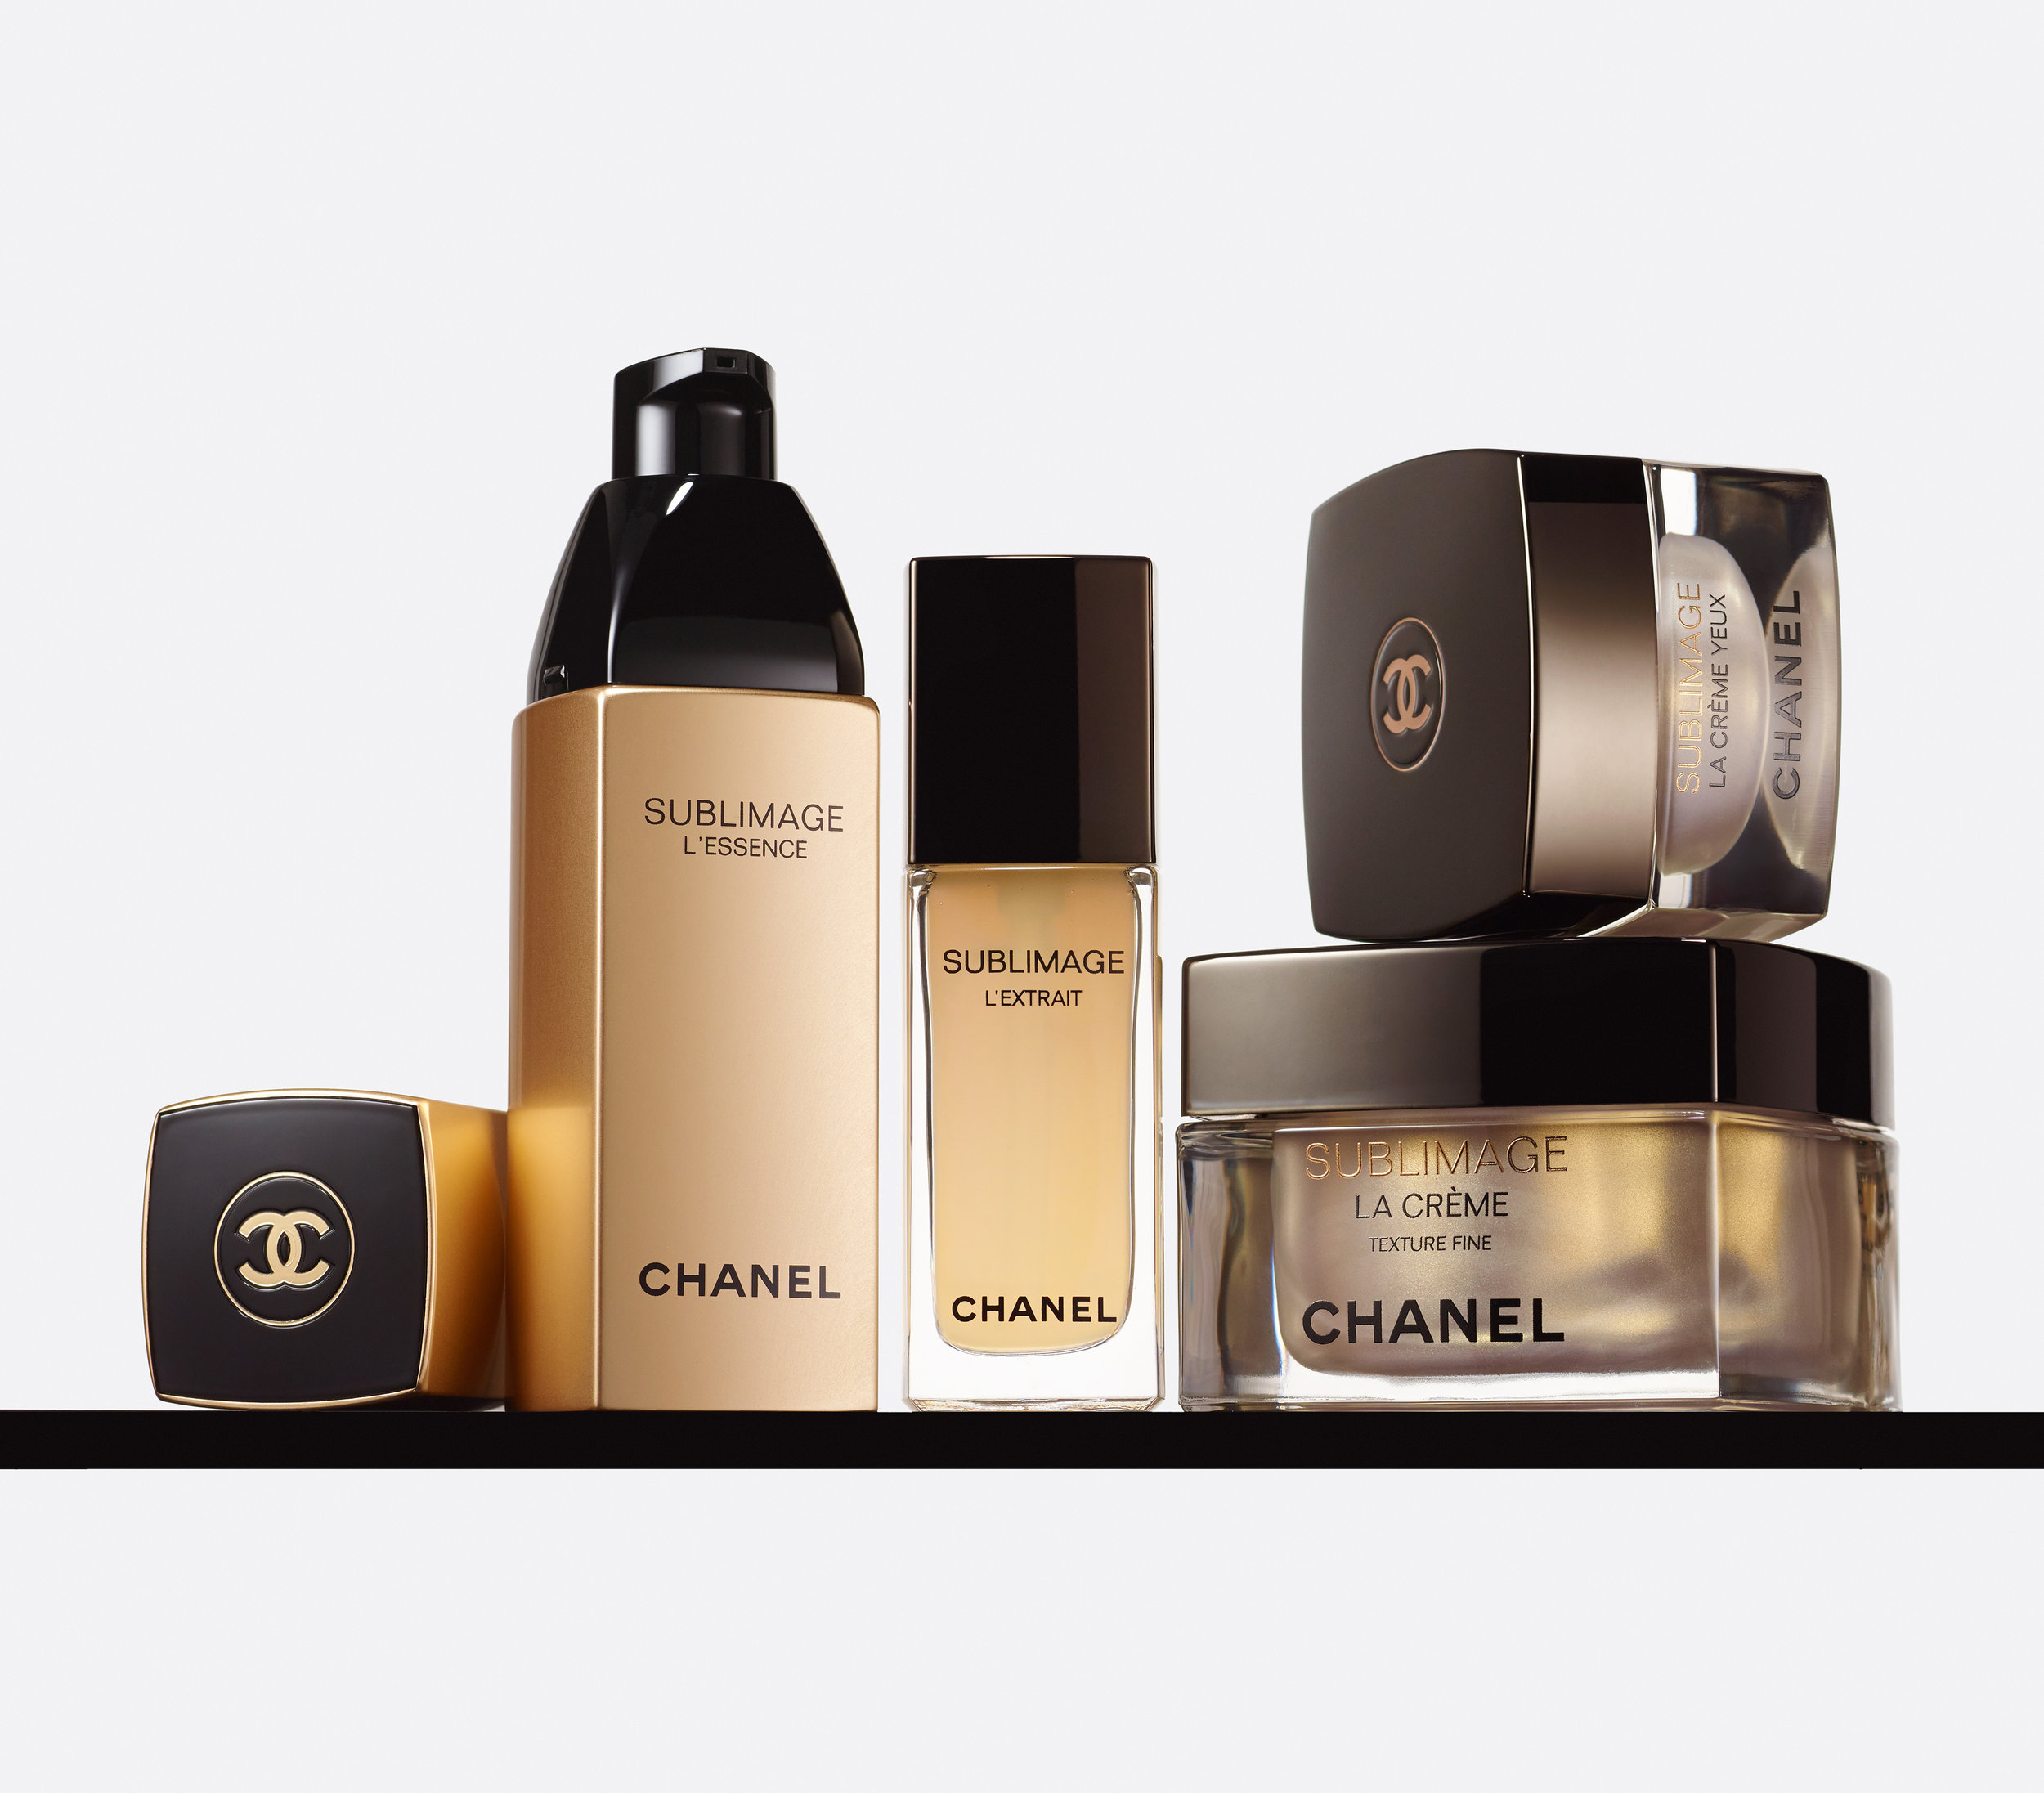 Chanel_lextrait_full_0070rt4.jpg